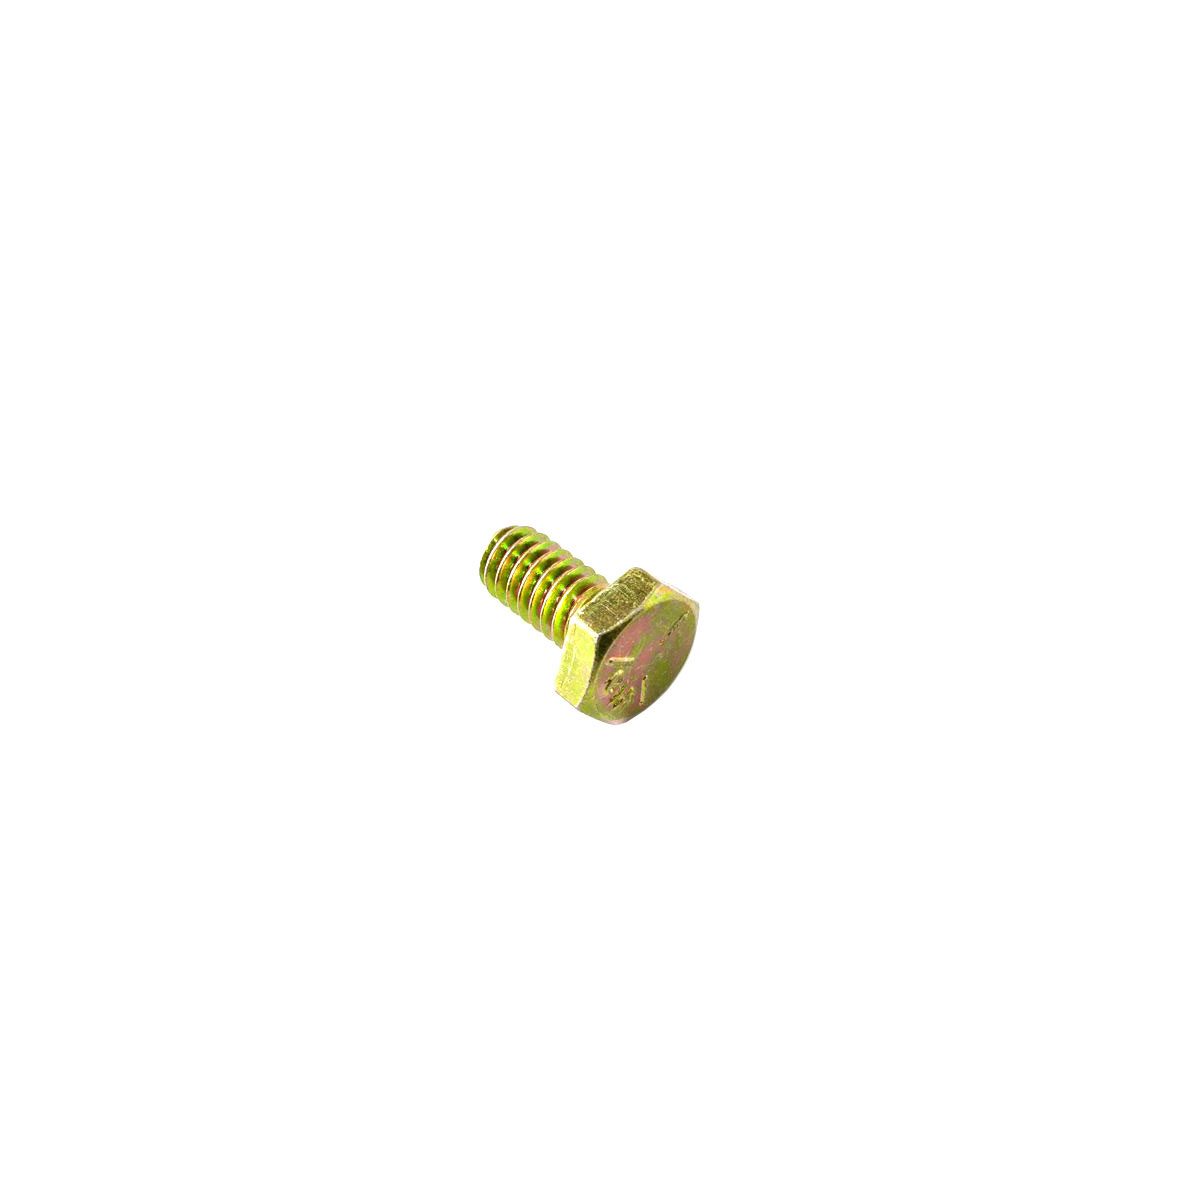 Scag Hex Head Bolt 1/4-20 x 1/2 inch 04001-44